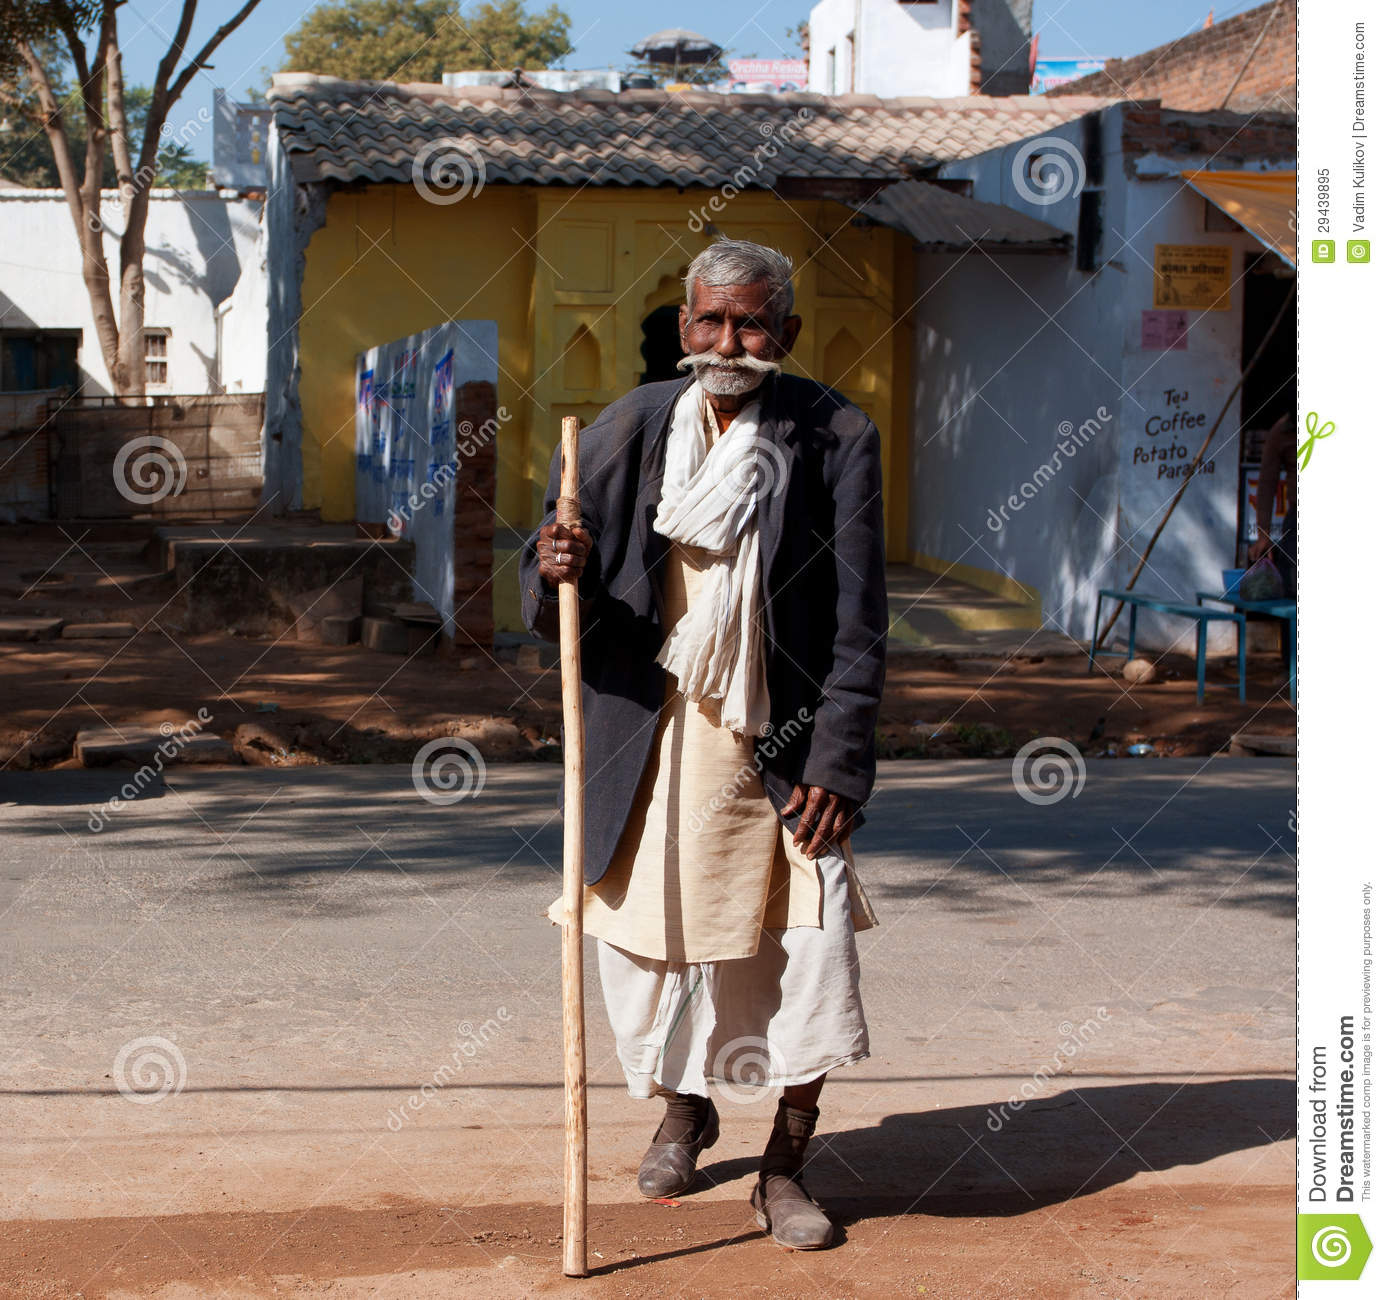 Image of: India Poor Elderly Man Walk The Street At The Sunny Day In Orchha India 60plus Age Group In India Will Increase To 100 Million People In 2013 Dreamstimecom Very Old Asian Man Walk The Street Editorial Image Image Of